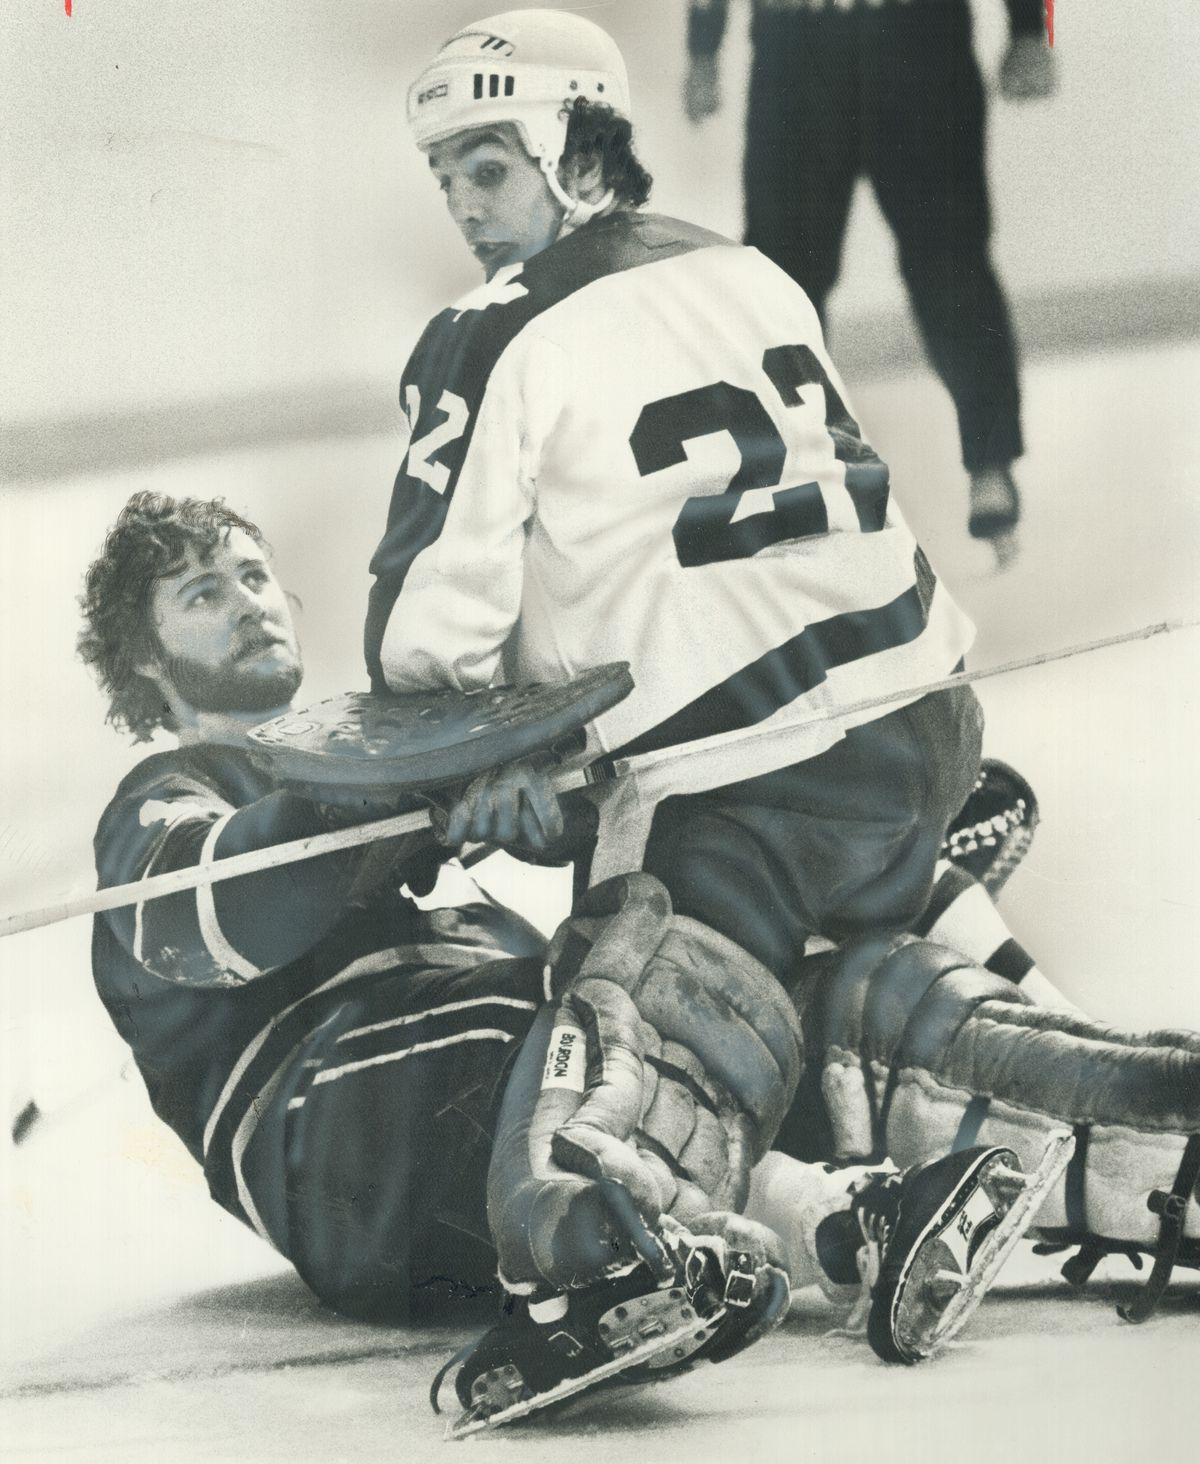 Mask Knocked Off by collision; Vancouver Canucks' goalie Gary Smith looks up at Tiger Williams of Le